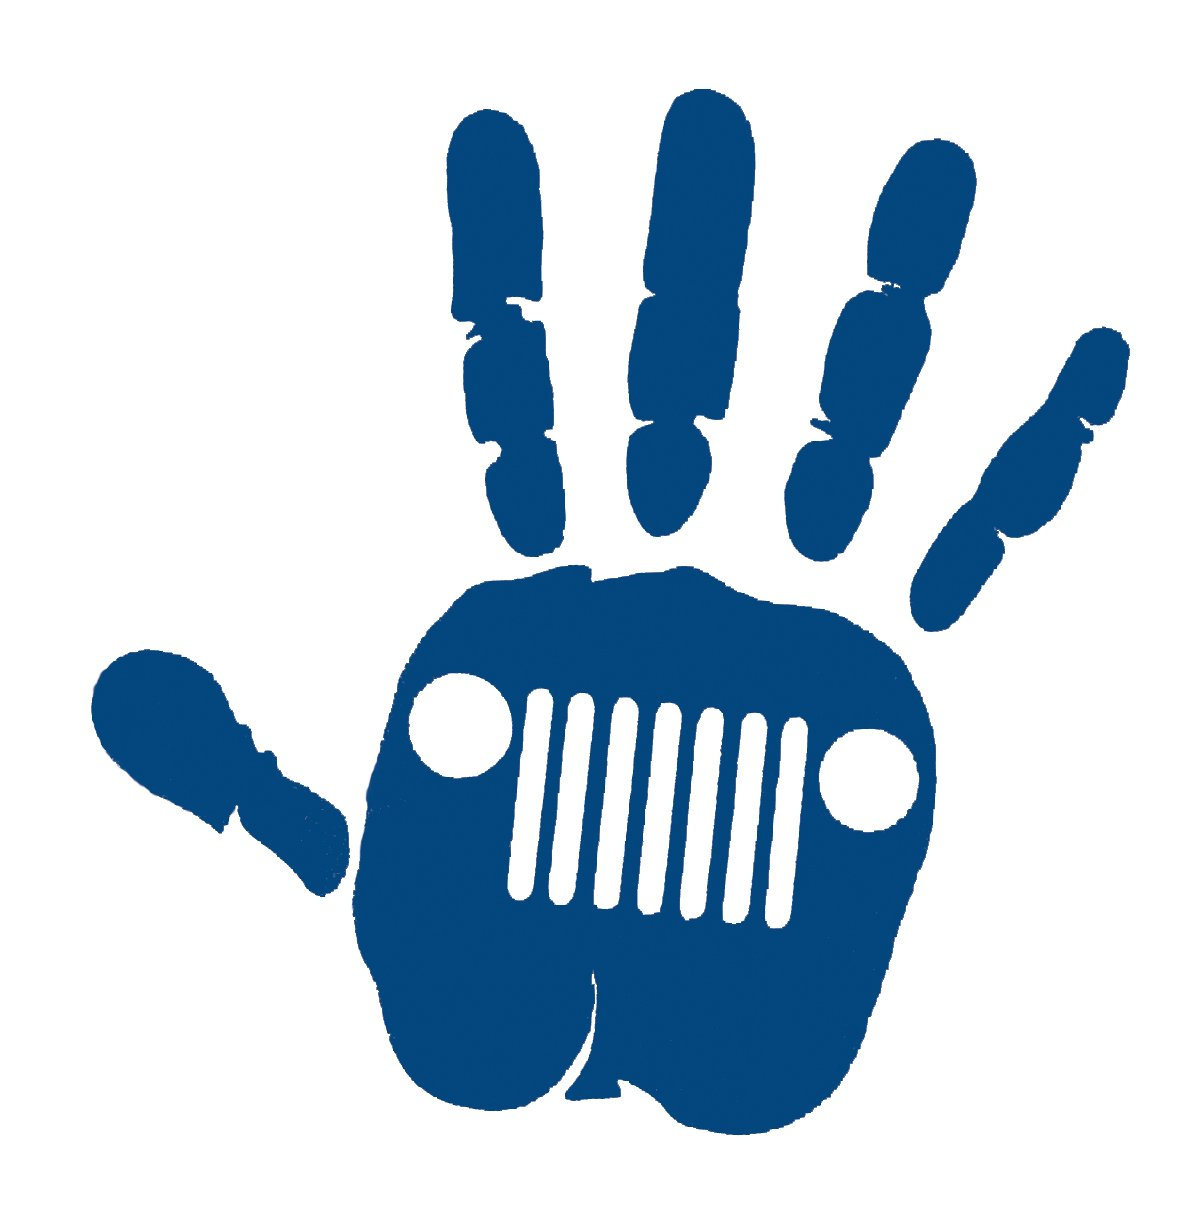 jeep wave decal-blue color